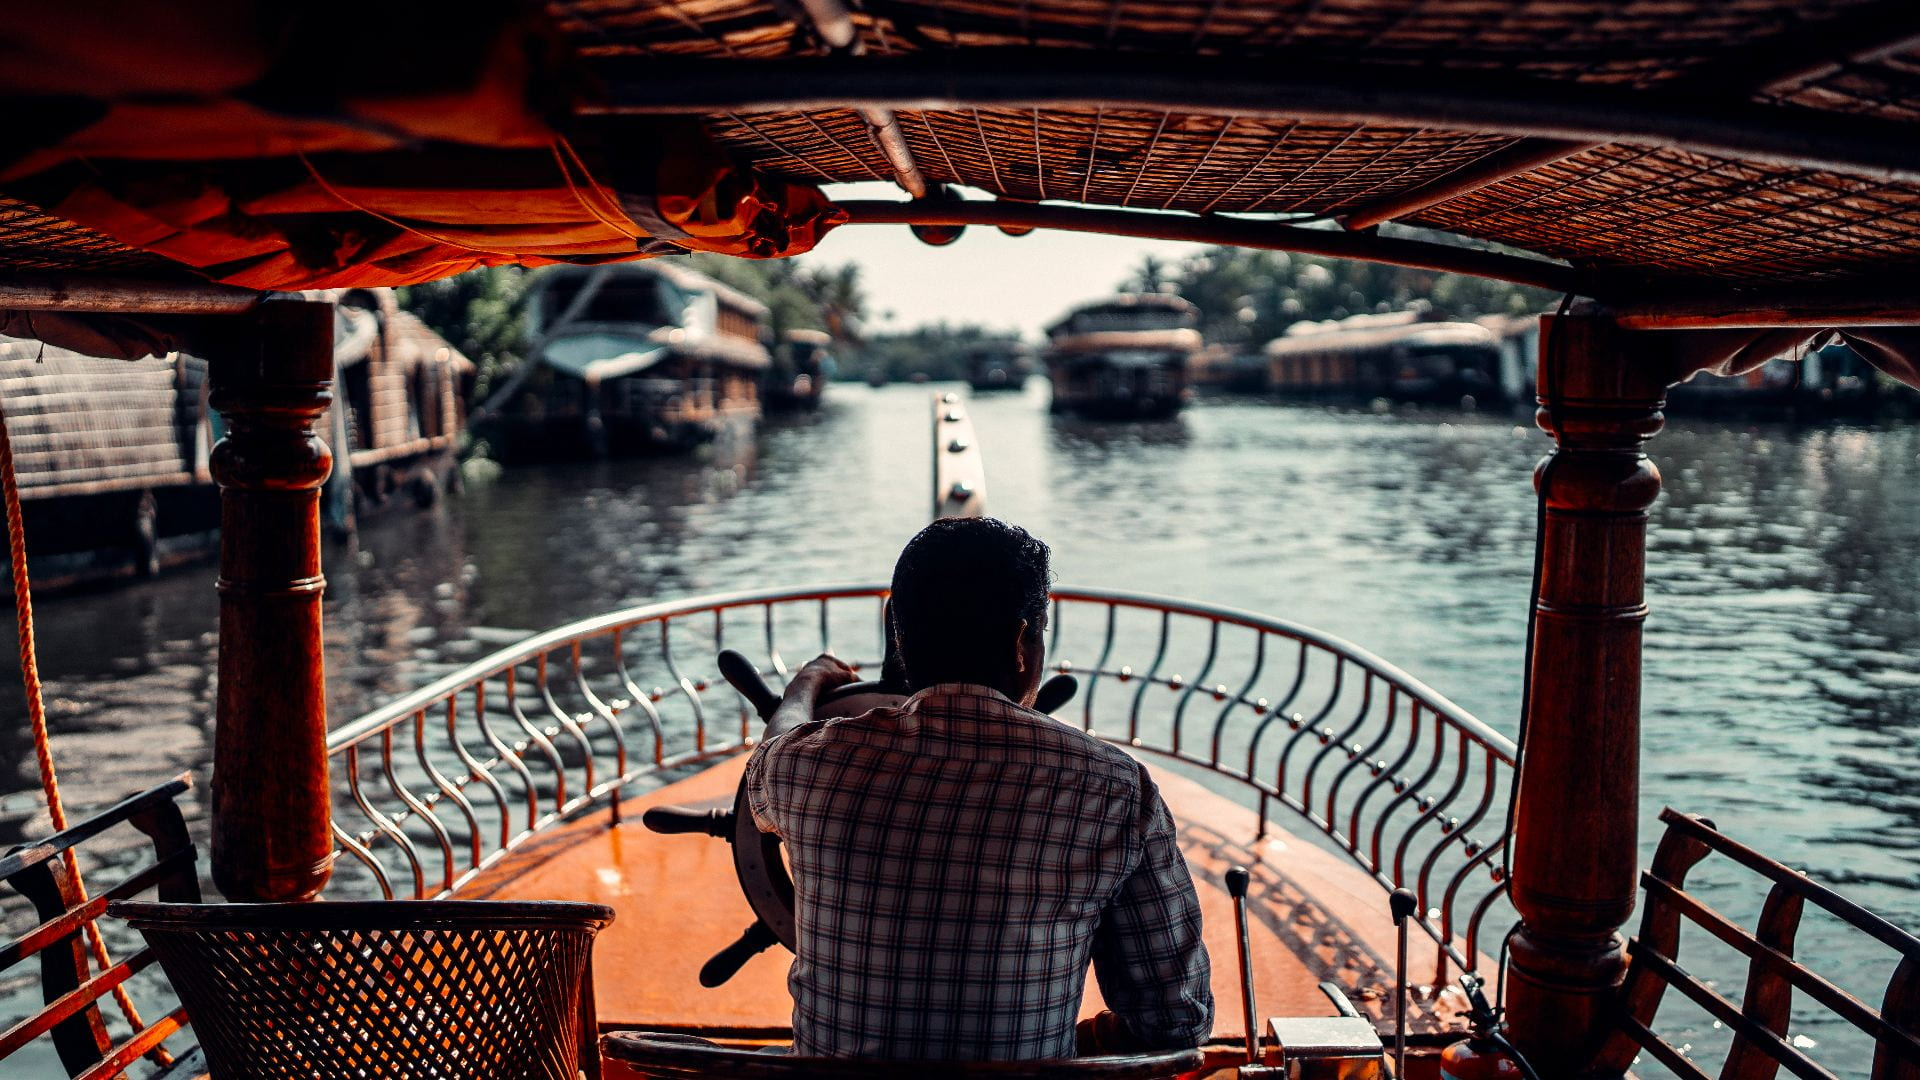 Man driving a boat in Kerala, India